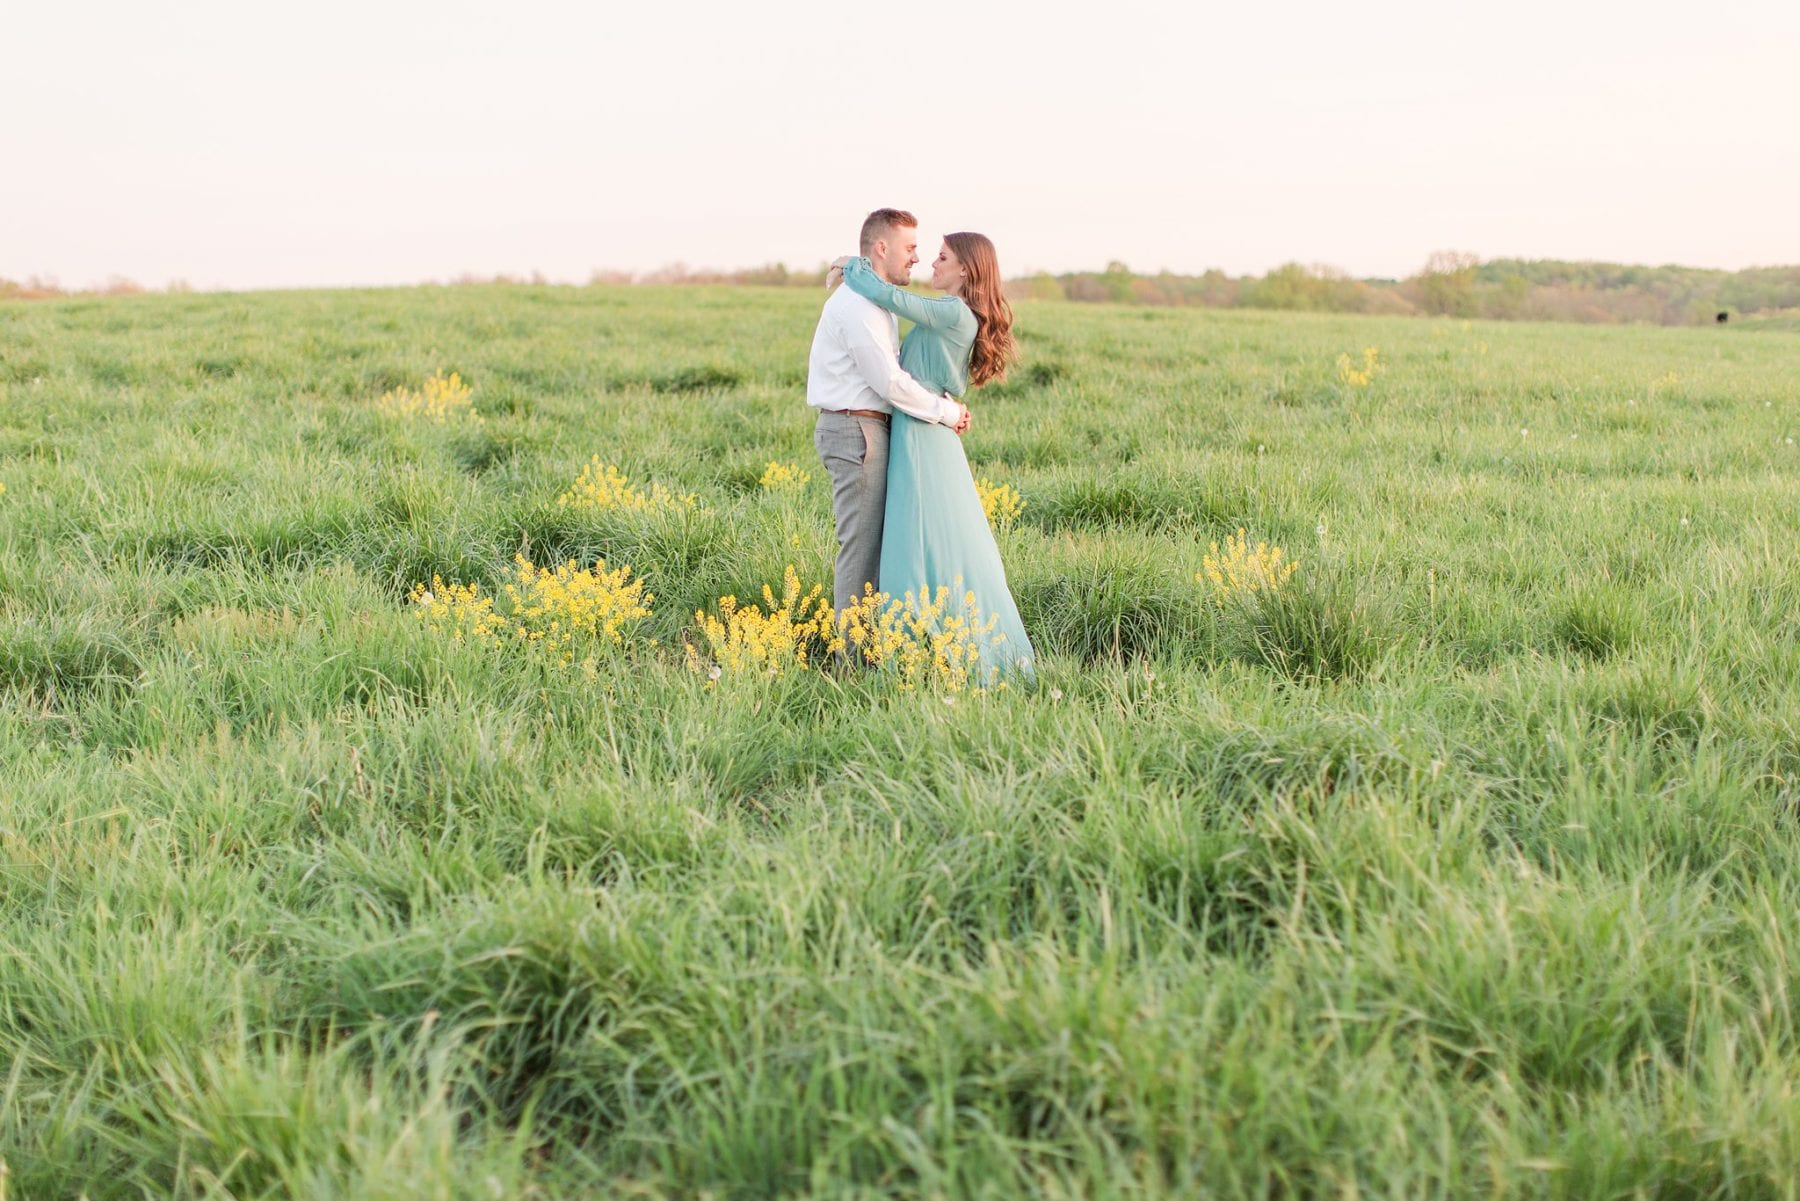 Goodstone Inn Engagement Session Virginia Wedding Photographer Megan Kelsey Photography-331.jpg